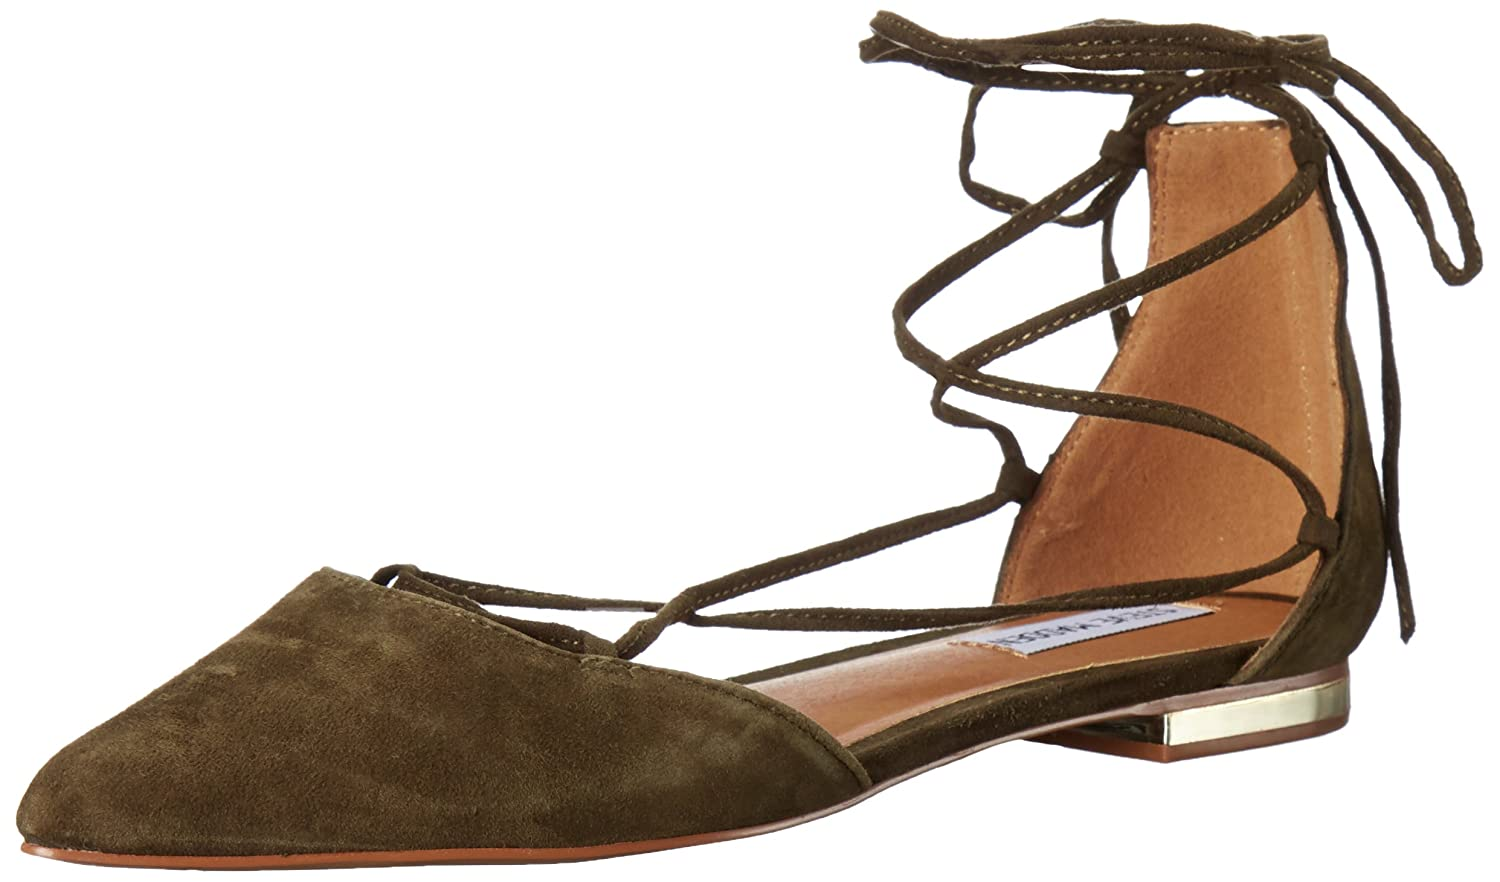 Steve Madden Women's Sunshine Pointed Toe Flat B01GFPMCO0 8 M US|Olive Suede